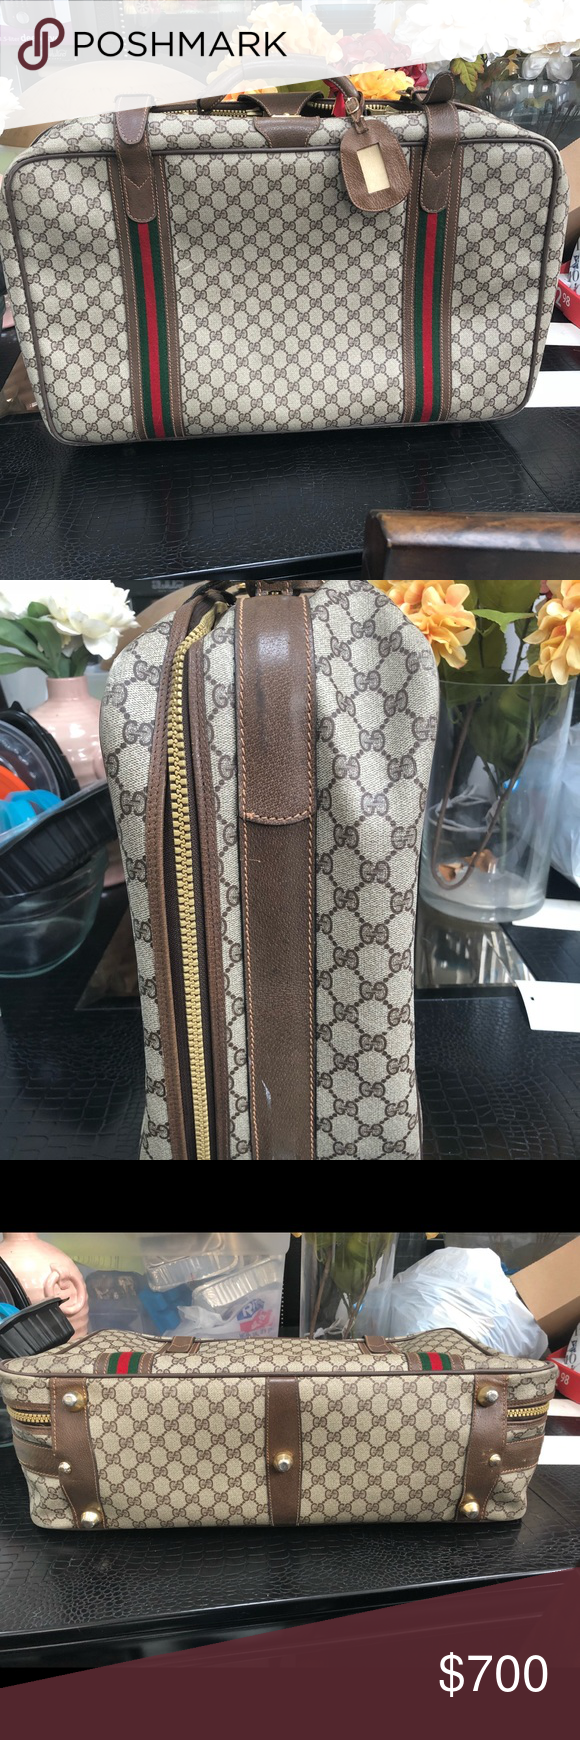 800f4108815 Gucci Vintage Monogram Suitcase Travel Luggage Preowned with love! I ship  next day! This